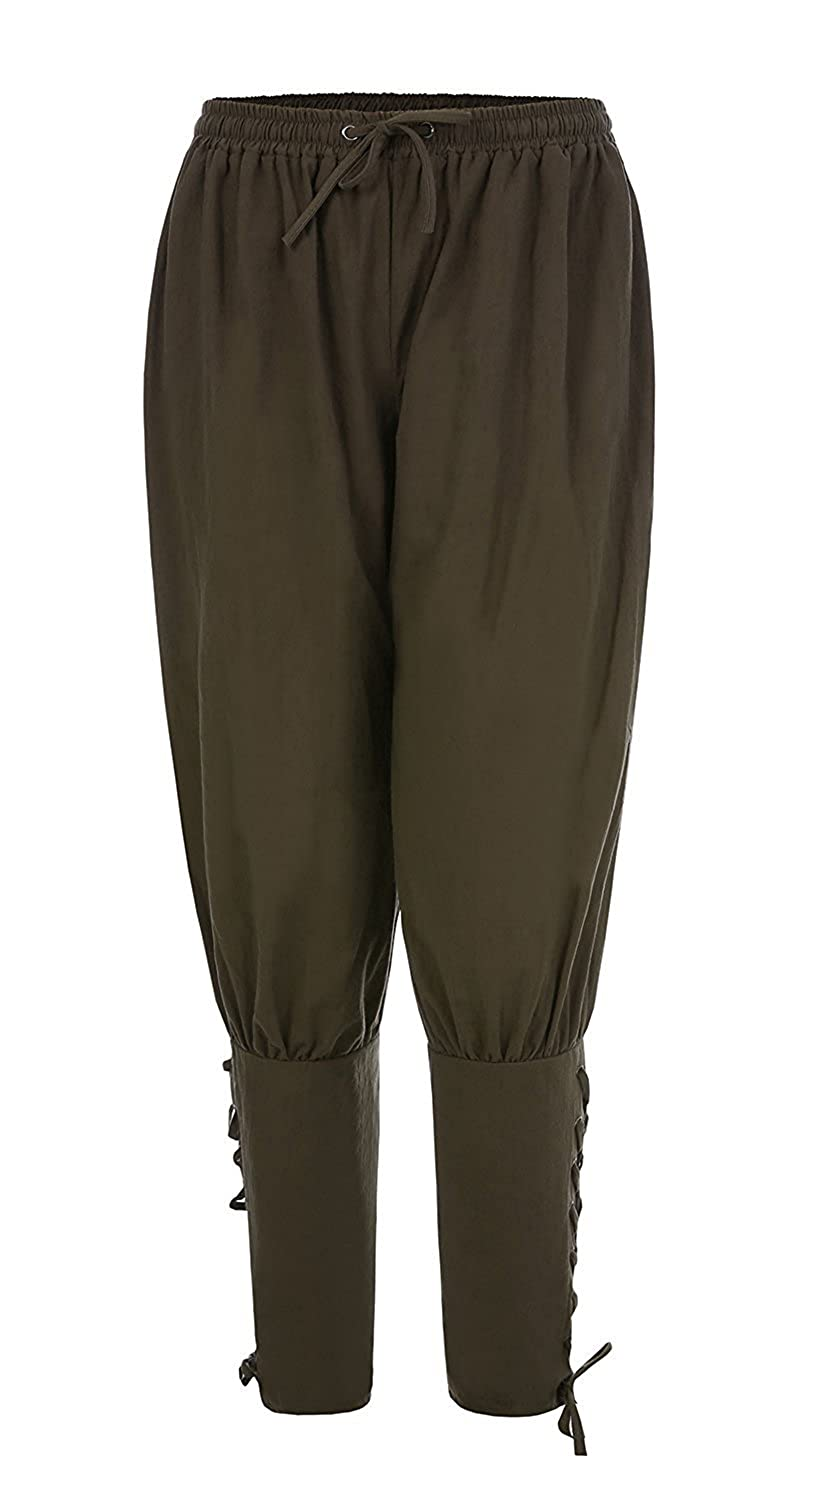 Men's Ankle Banded Pants Medieval Viking Navigator Trousers Renaissance Pants